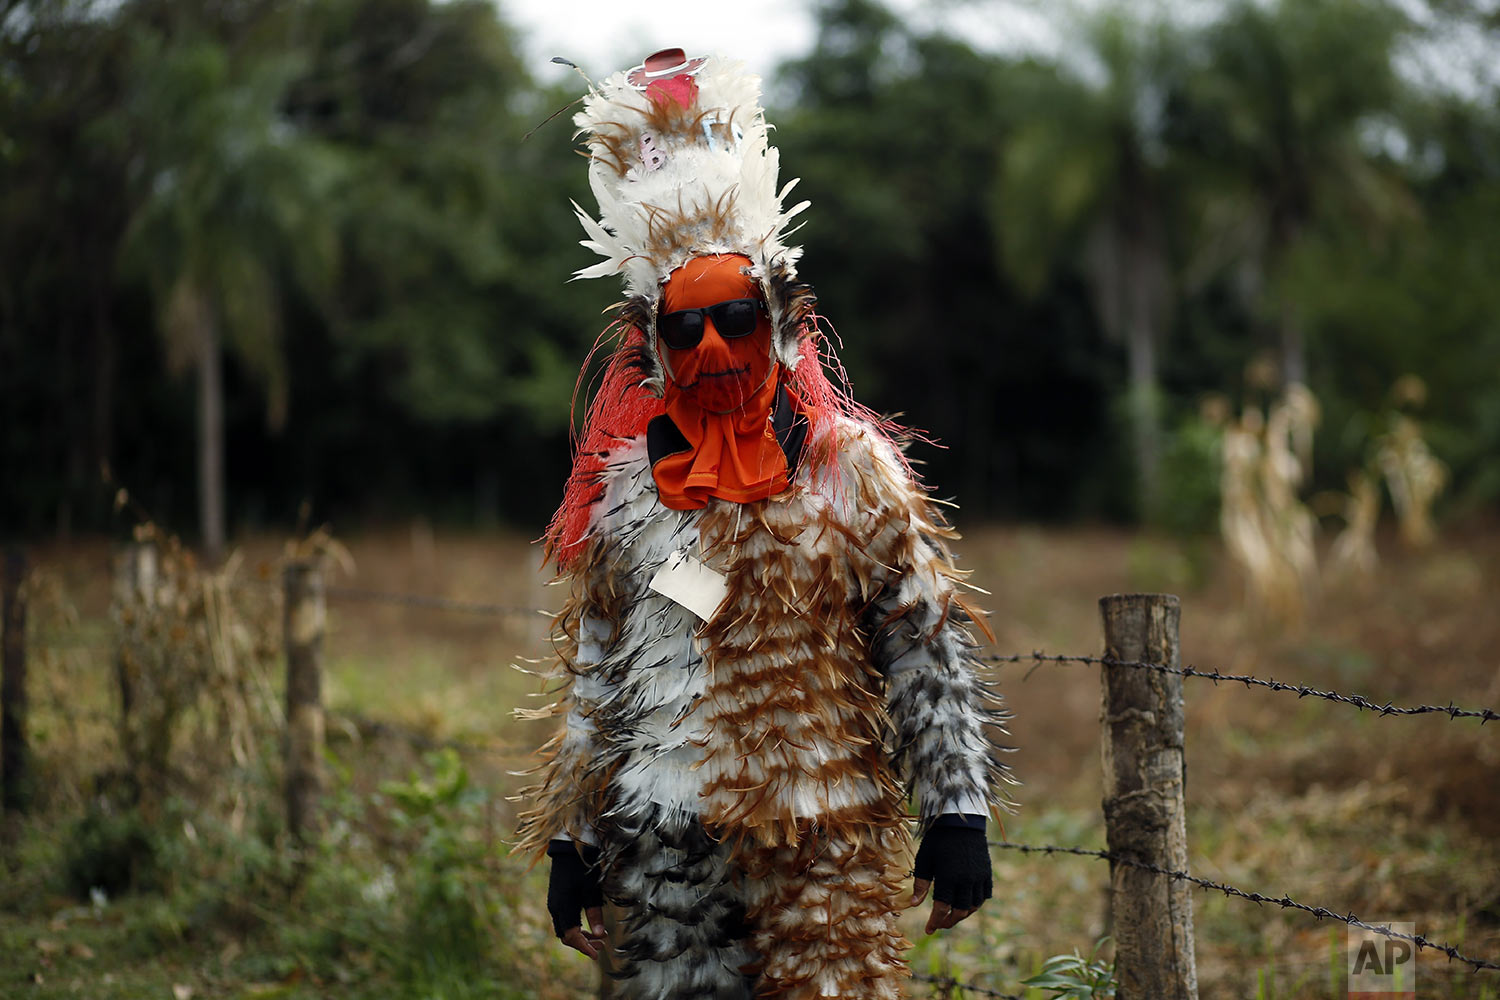 Angel Manuel Balbuena, a 12-year-old student, poses in his feathered costume during the feast of St. Francis Solano, in Emboscada, Paraguay, Wednesday, July 24, 2019. (AP Photo/Jorge Saenz)